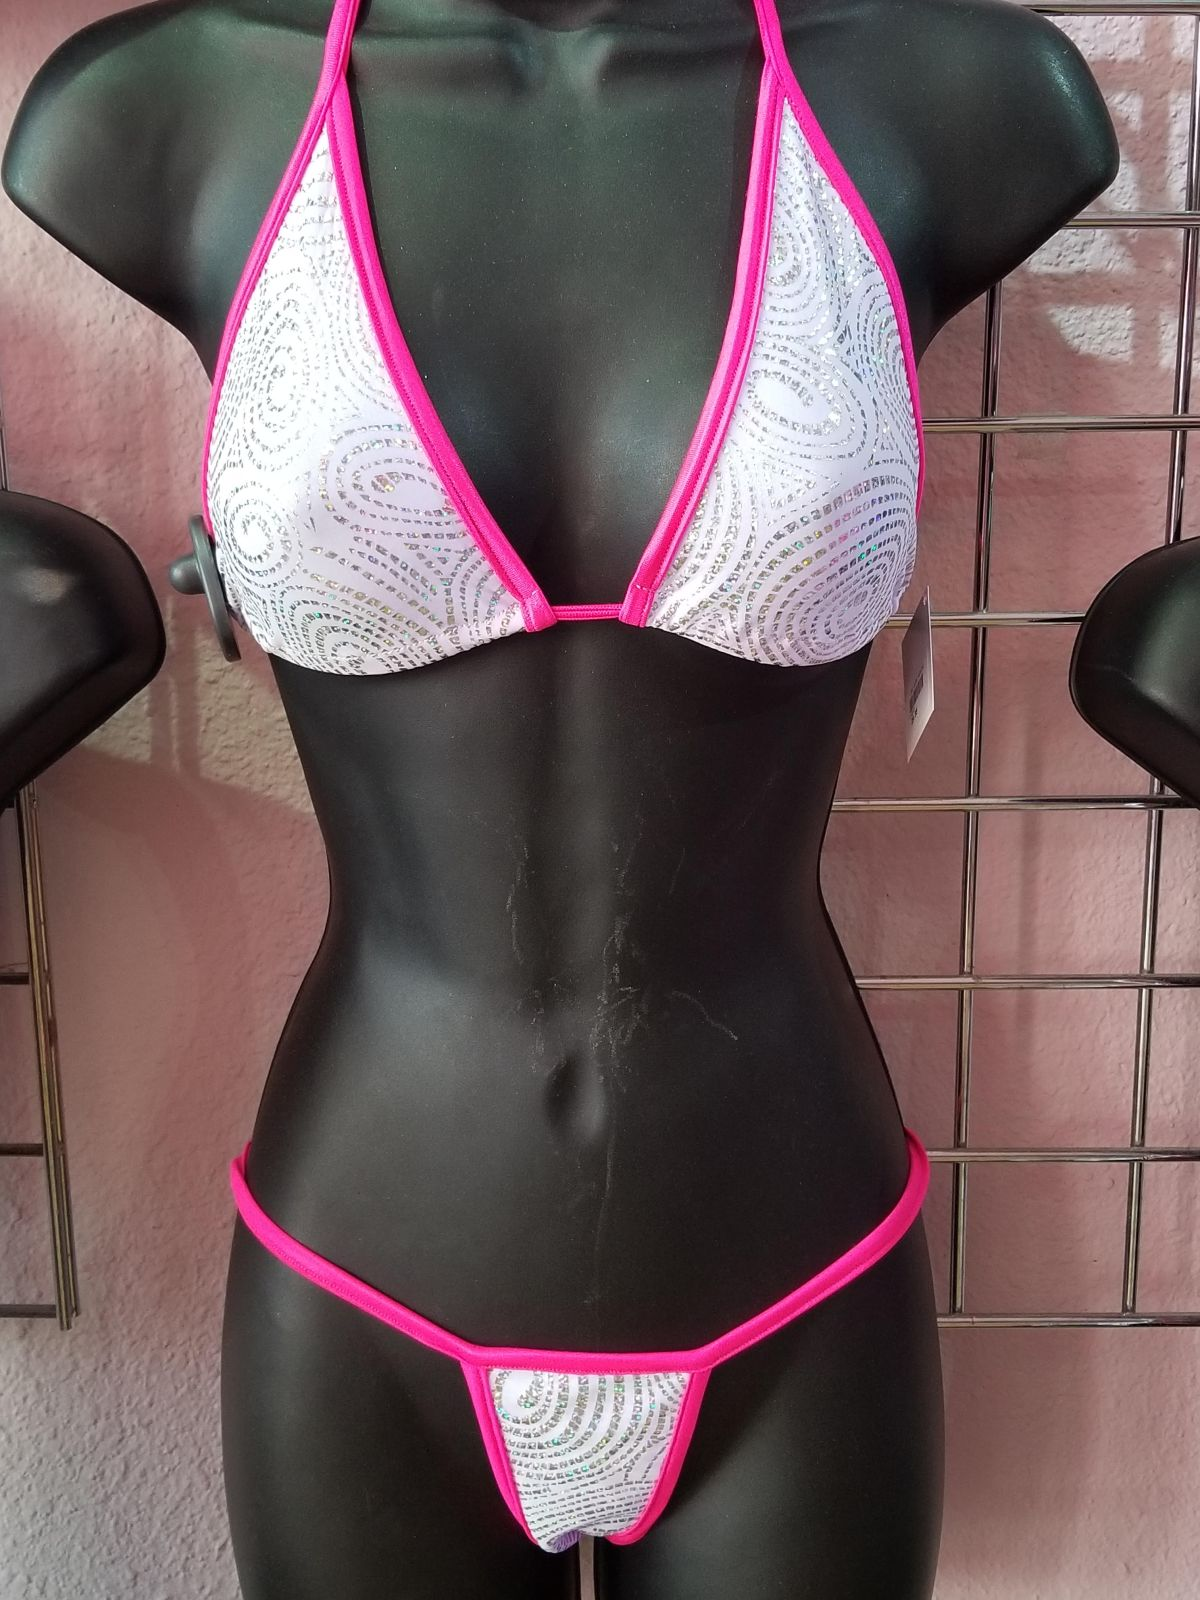 adult apparel tampa fl